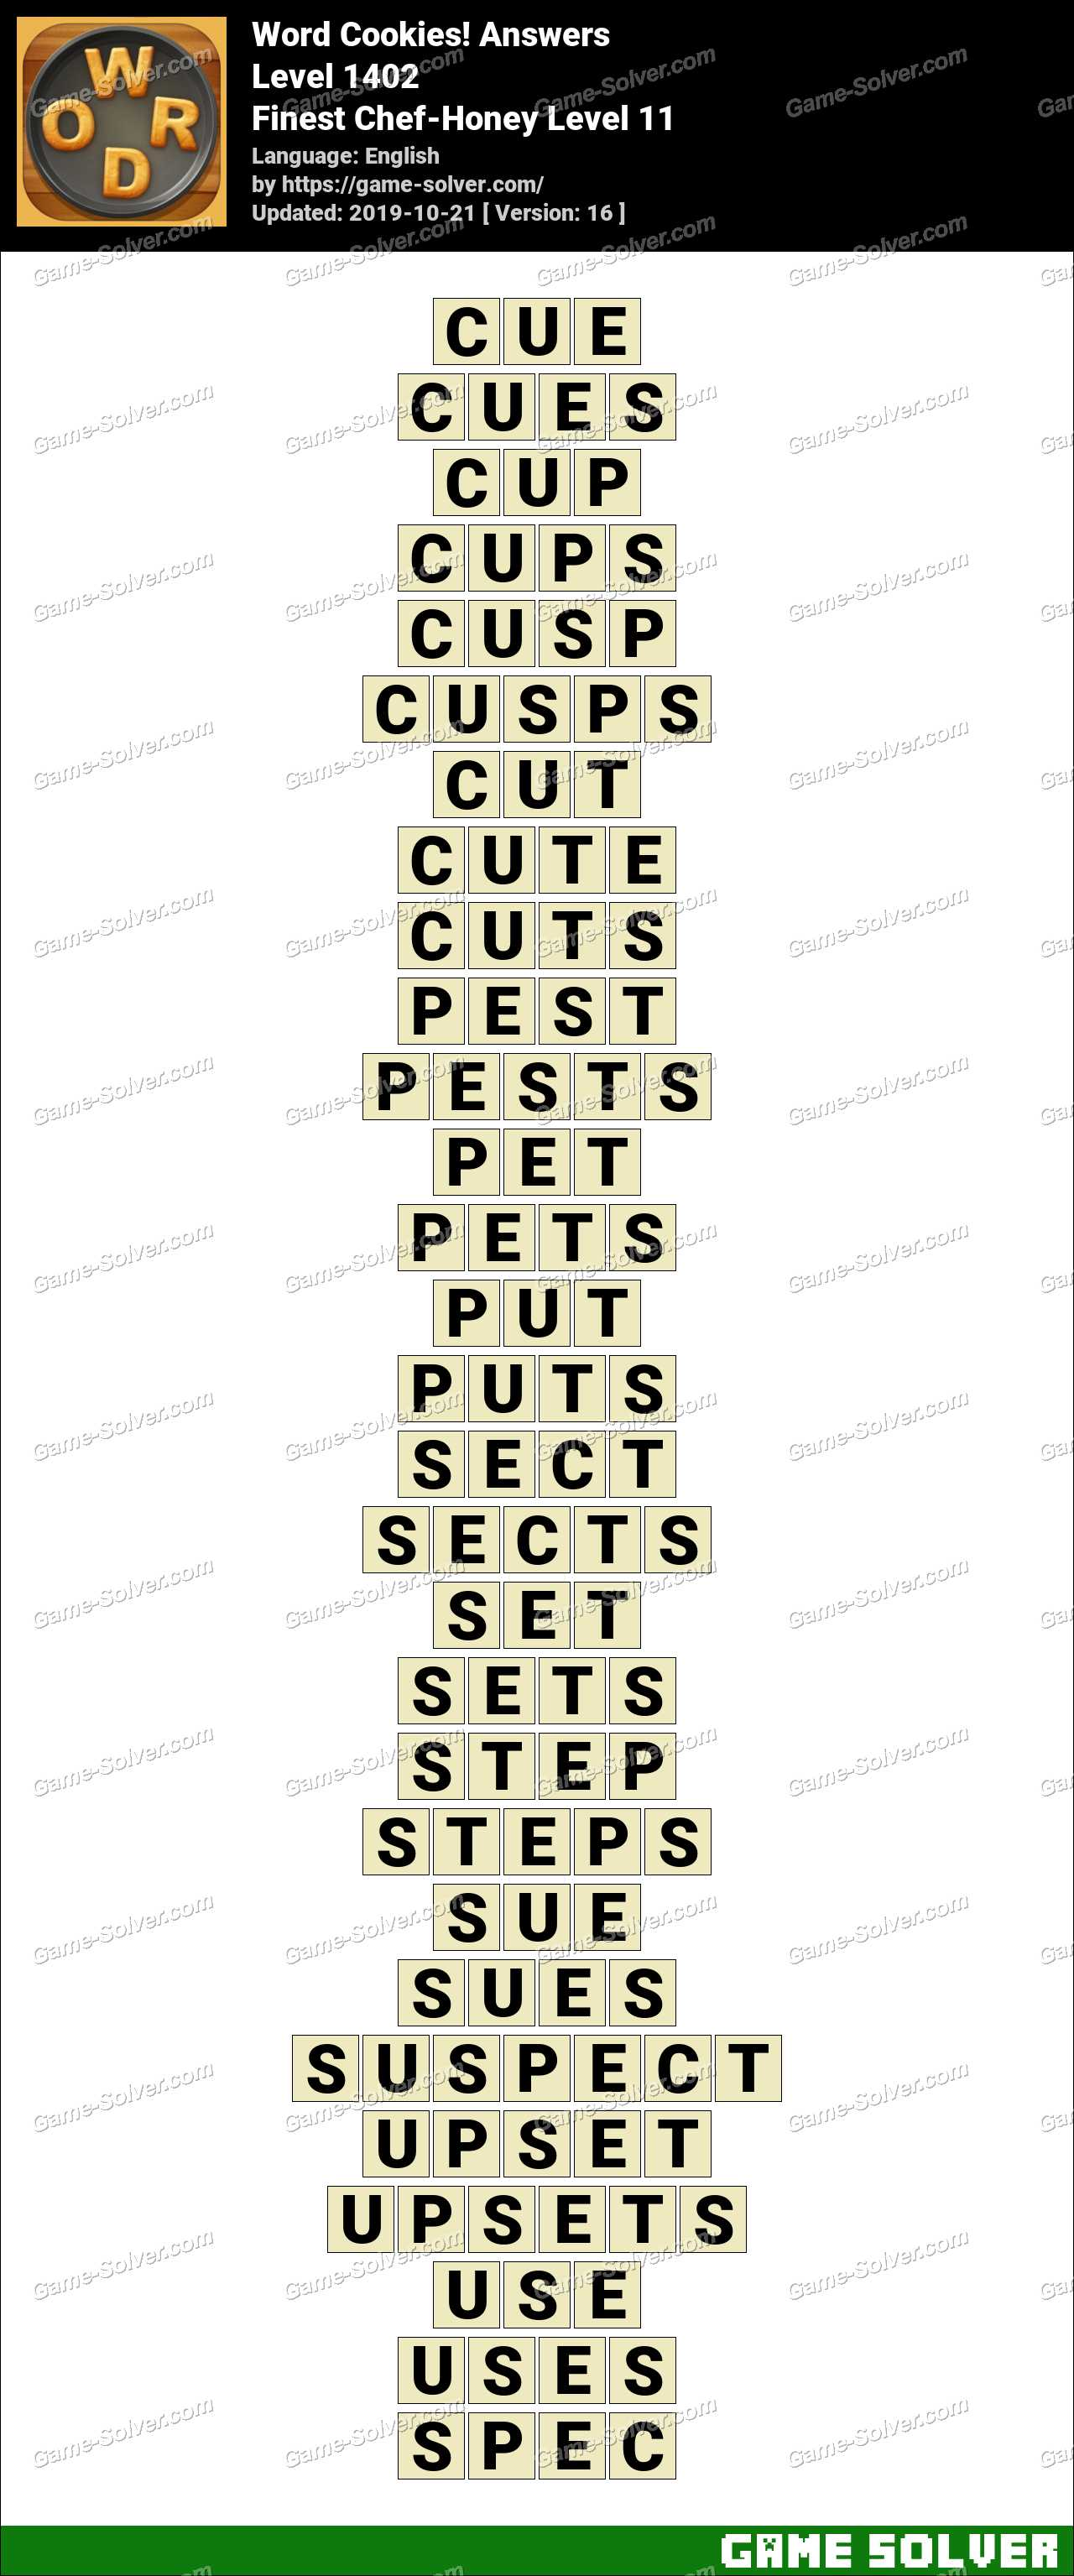 Word Cookies Finest Chef-Honey Level 11 Answers